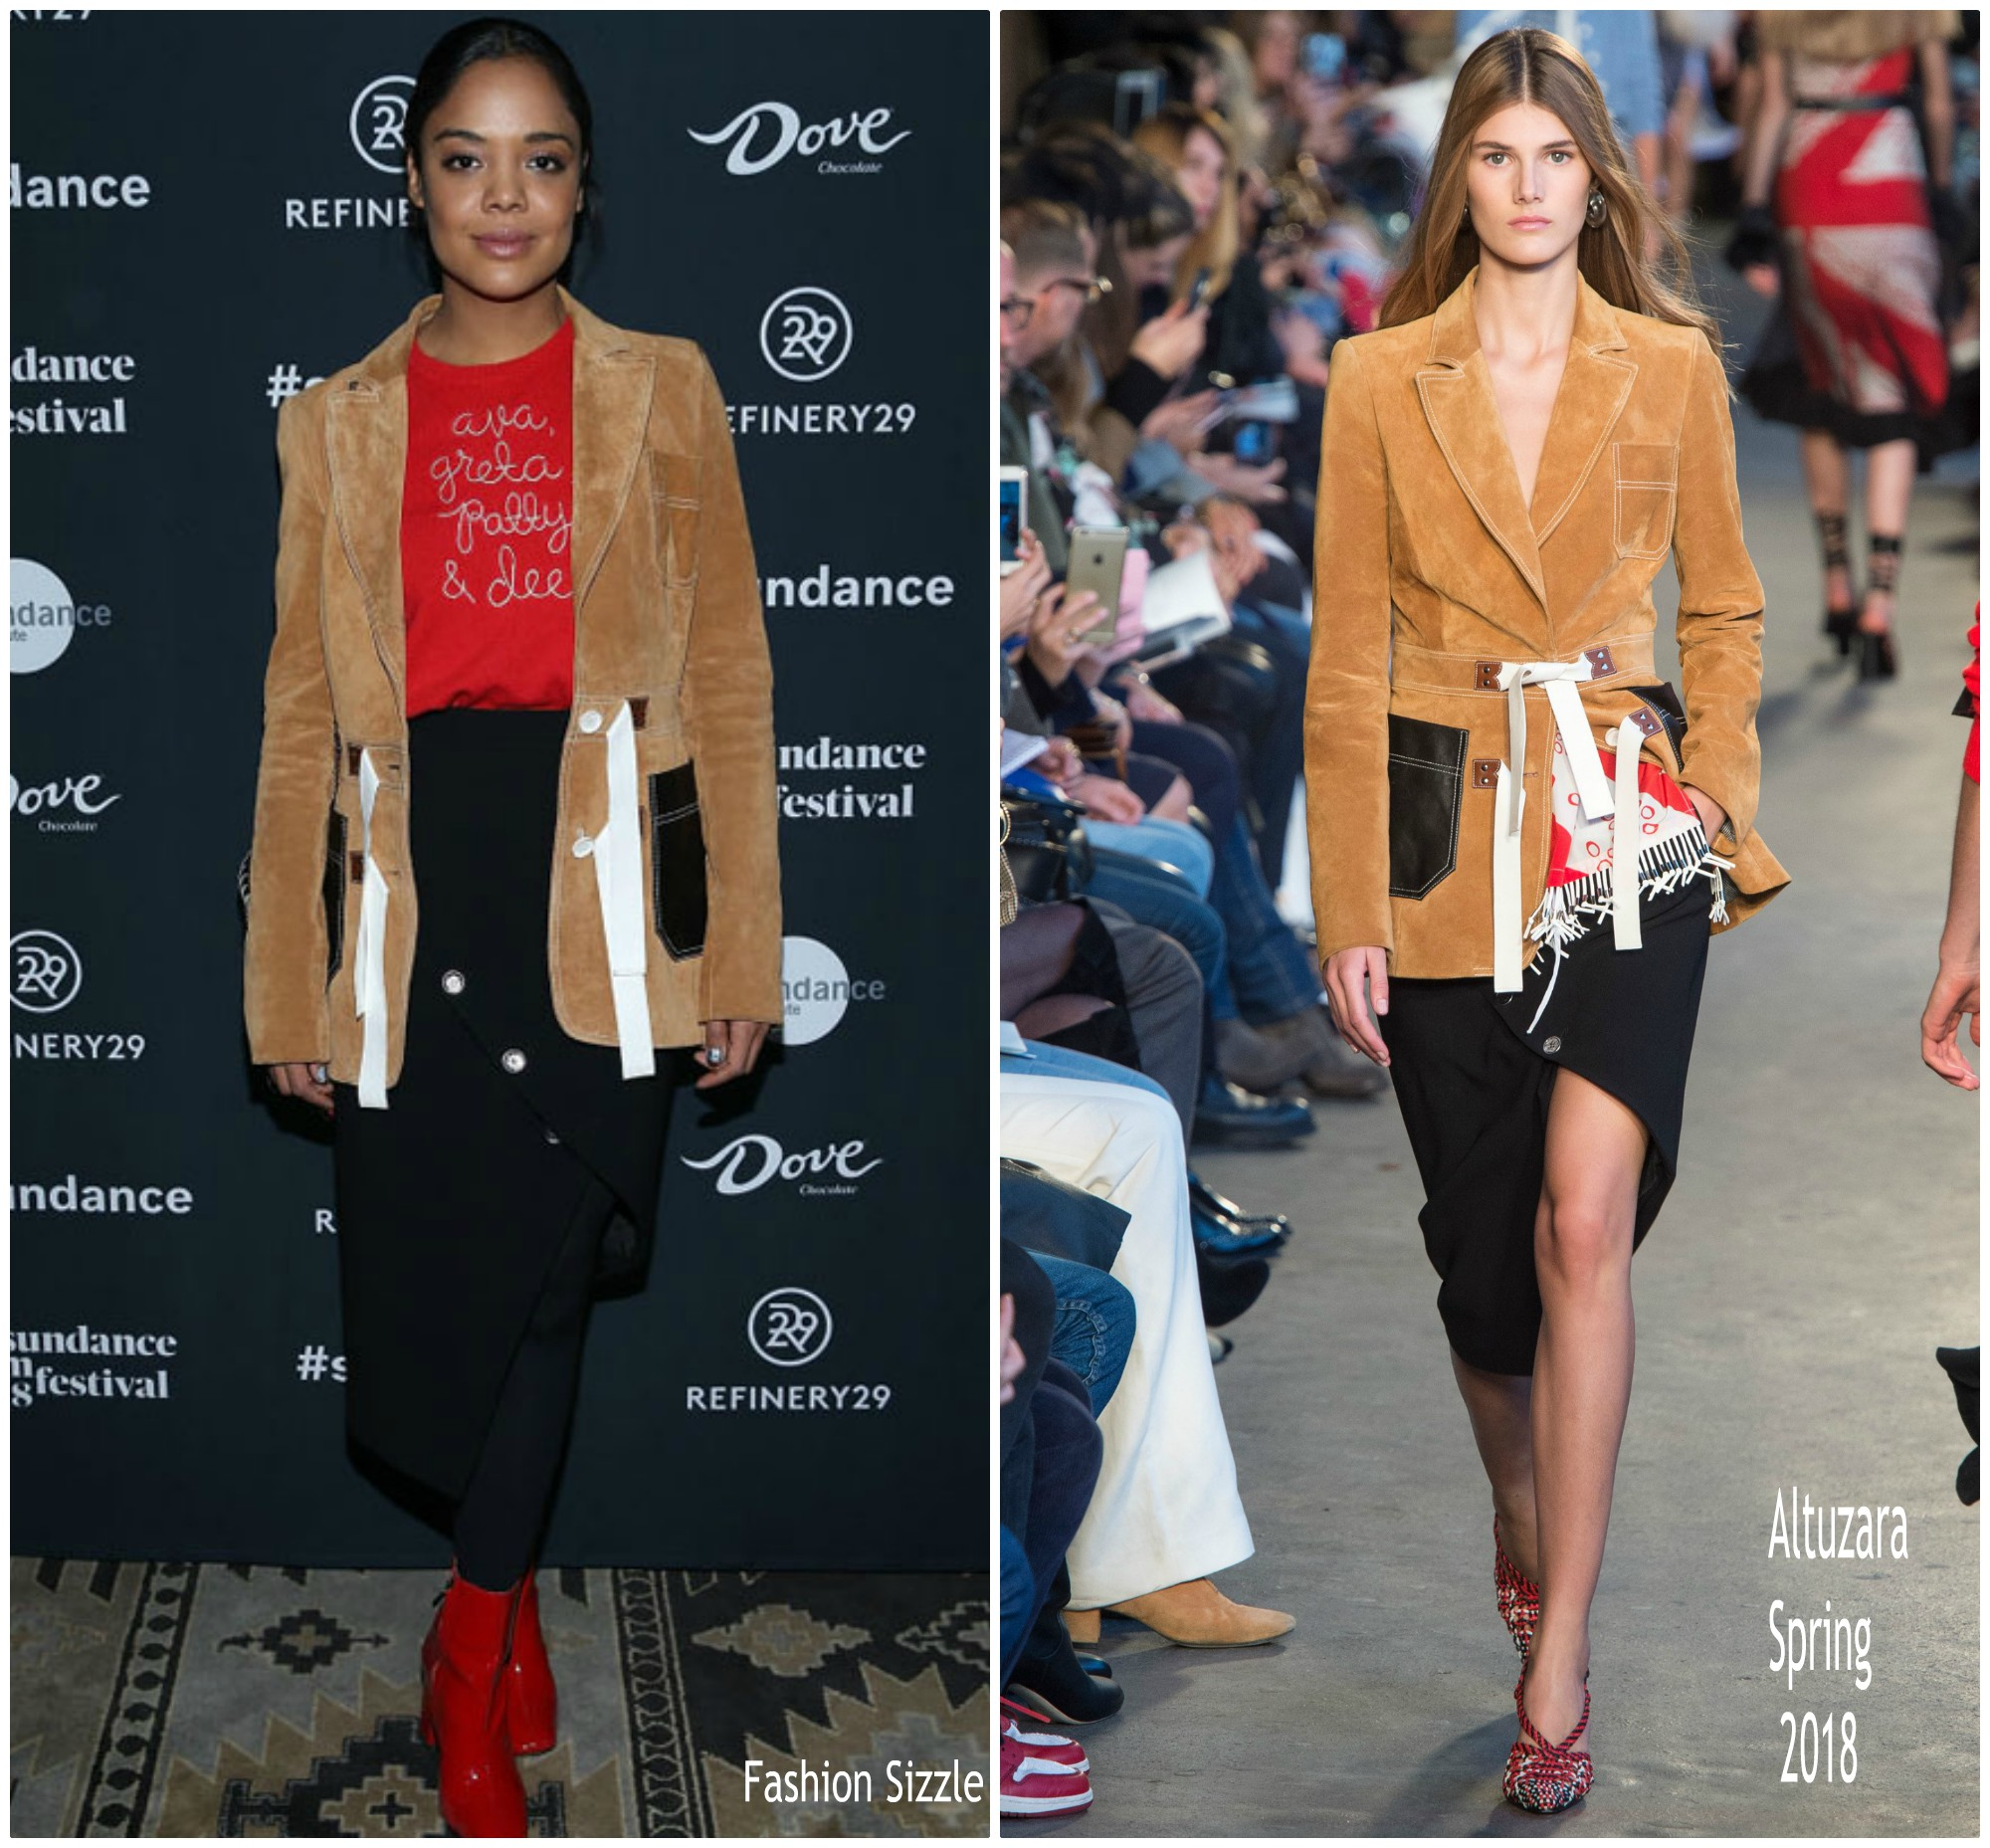 teesa-thompson-in-lingua-franca-altuzarra-women-at-sundance-brunch